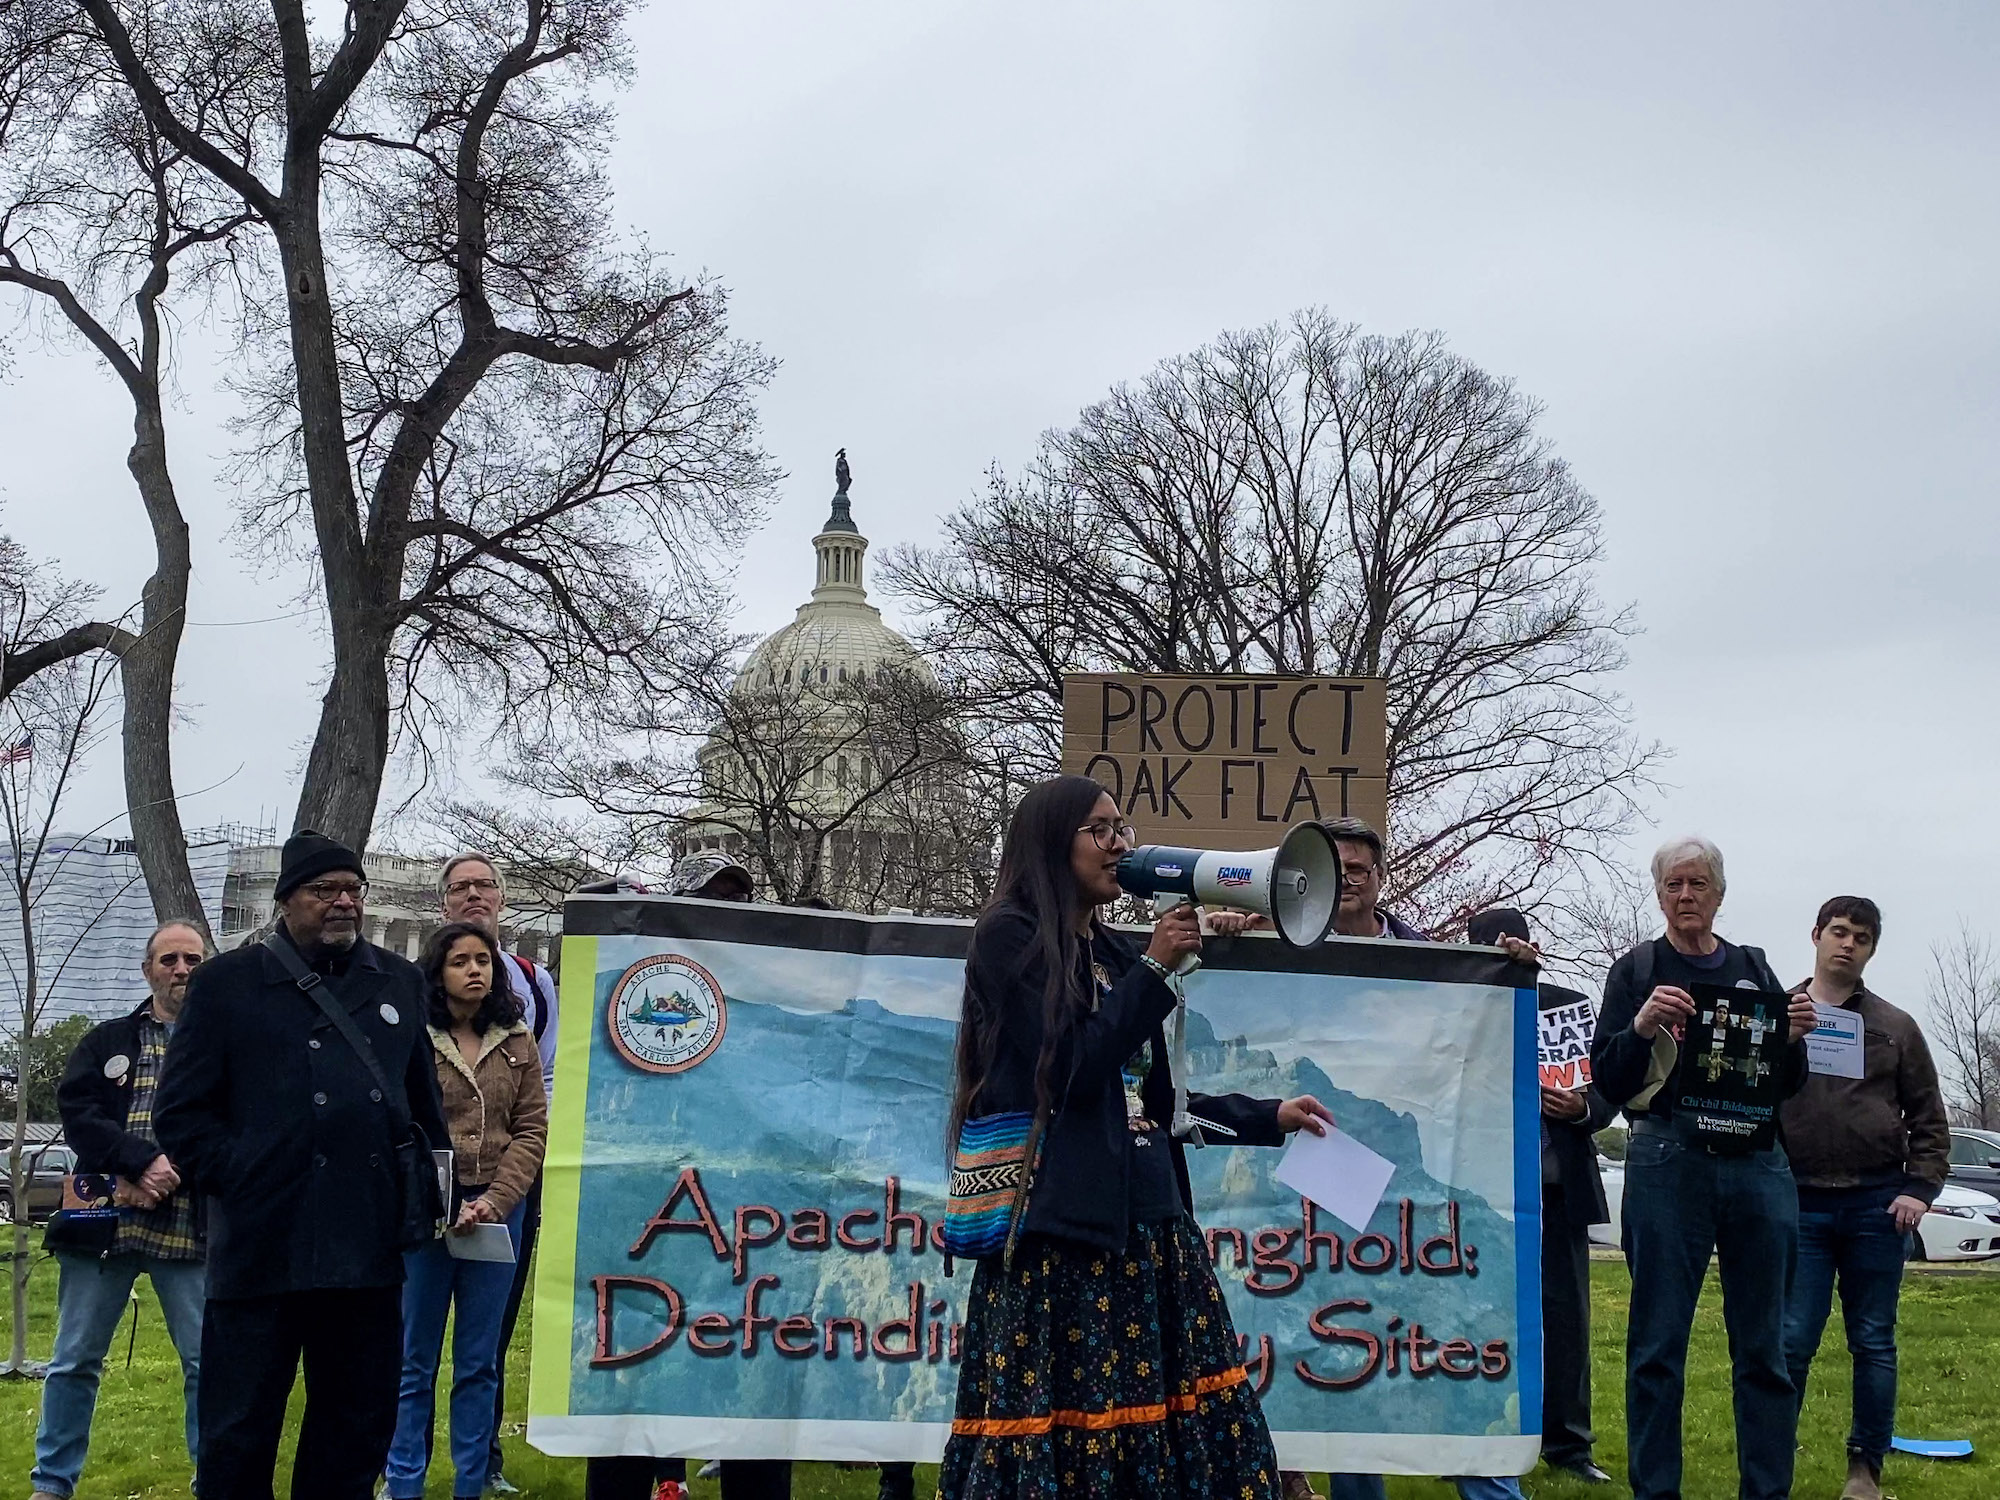 'The fight is here and now':  Sacred site debate returns to nation's capital amid familiar challenges